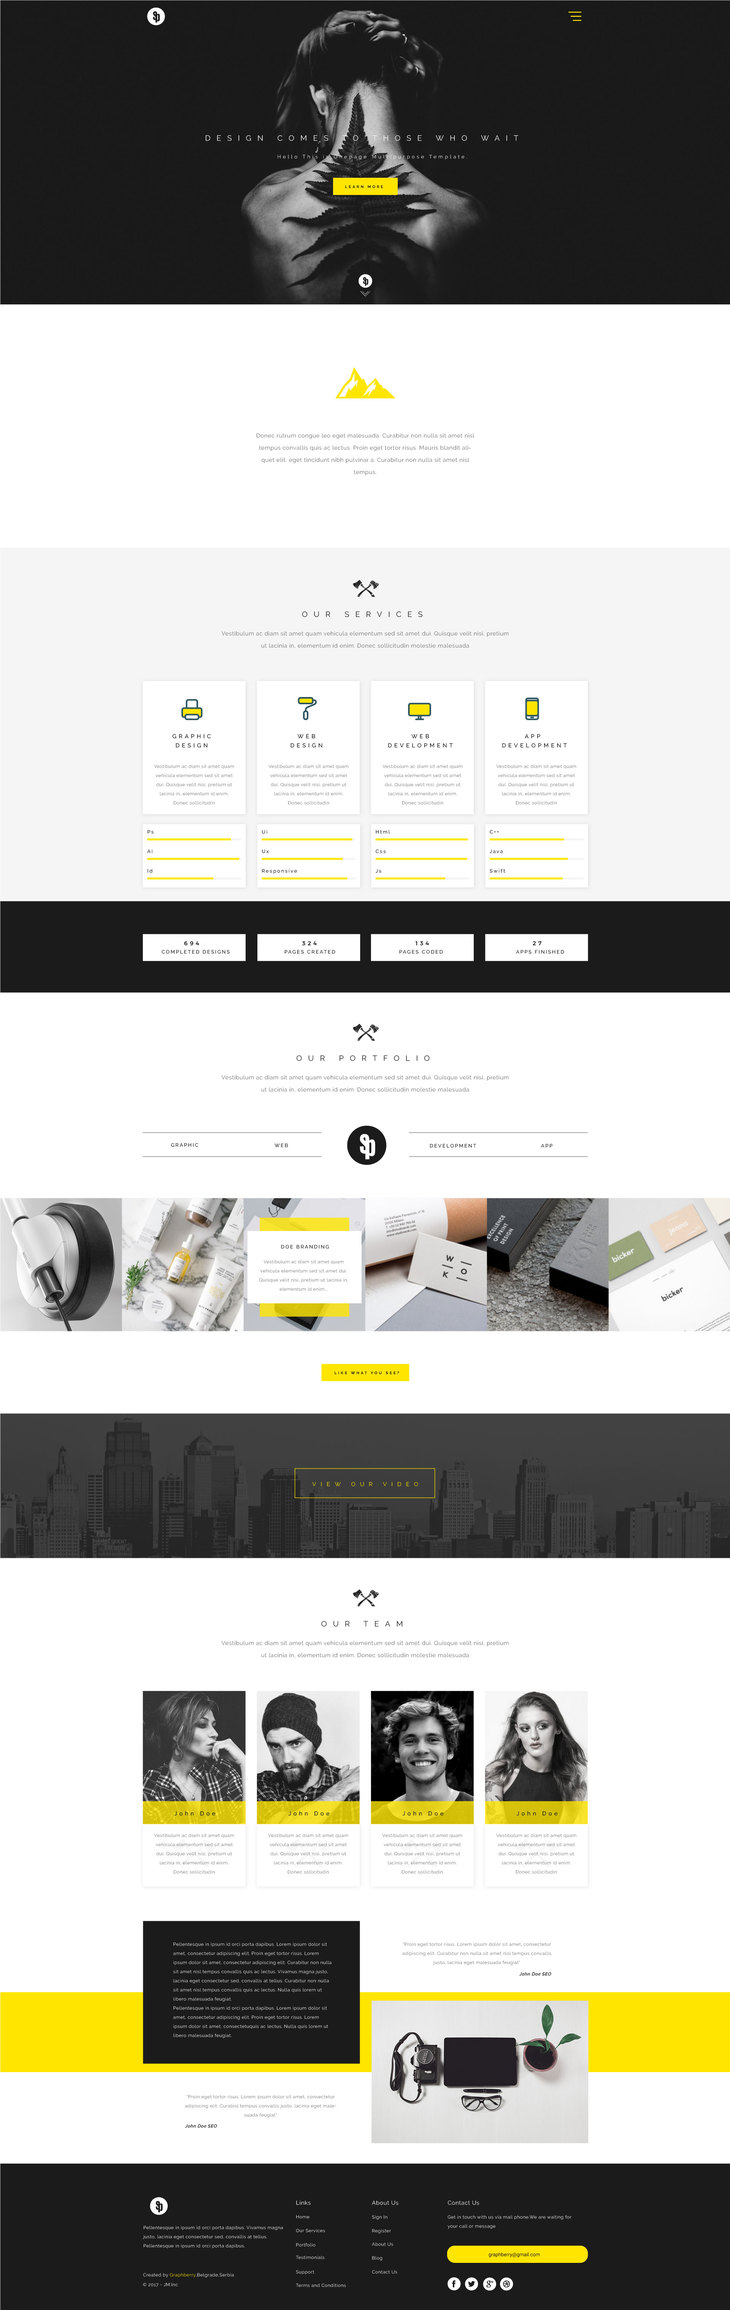 Sparkle - Multipurpose Web Template | Free PSD